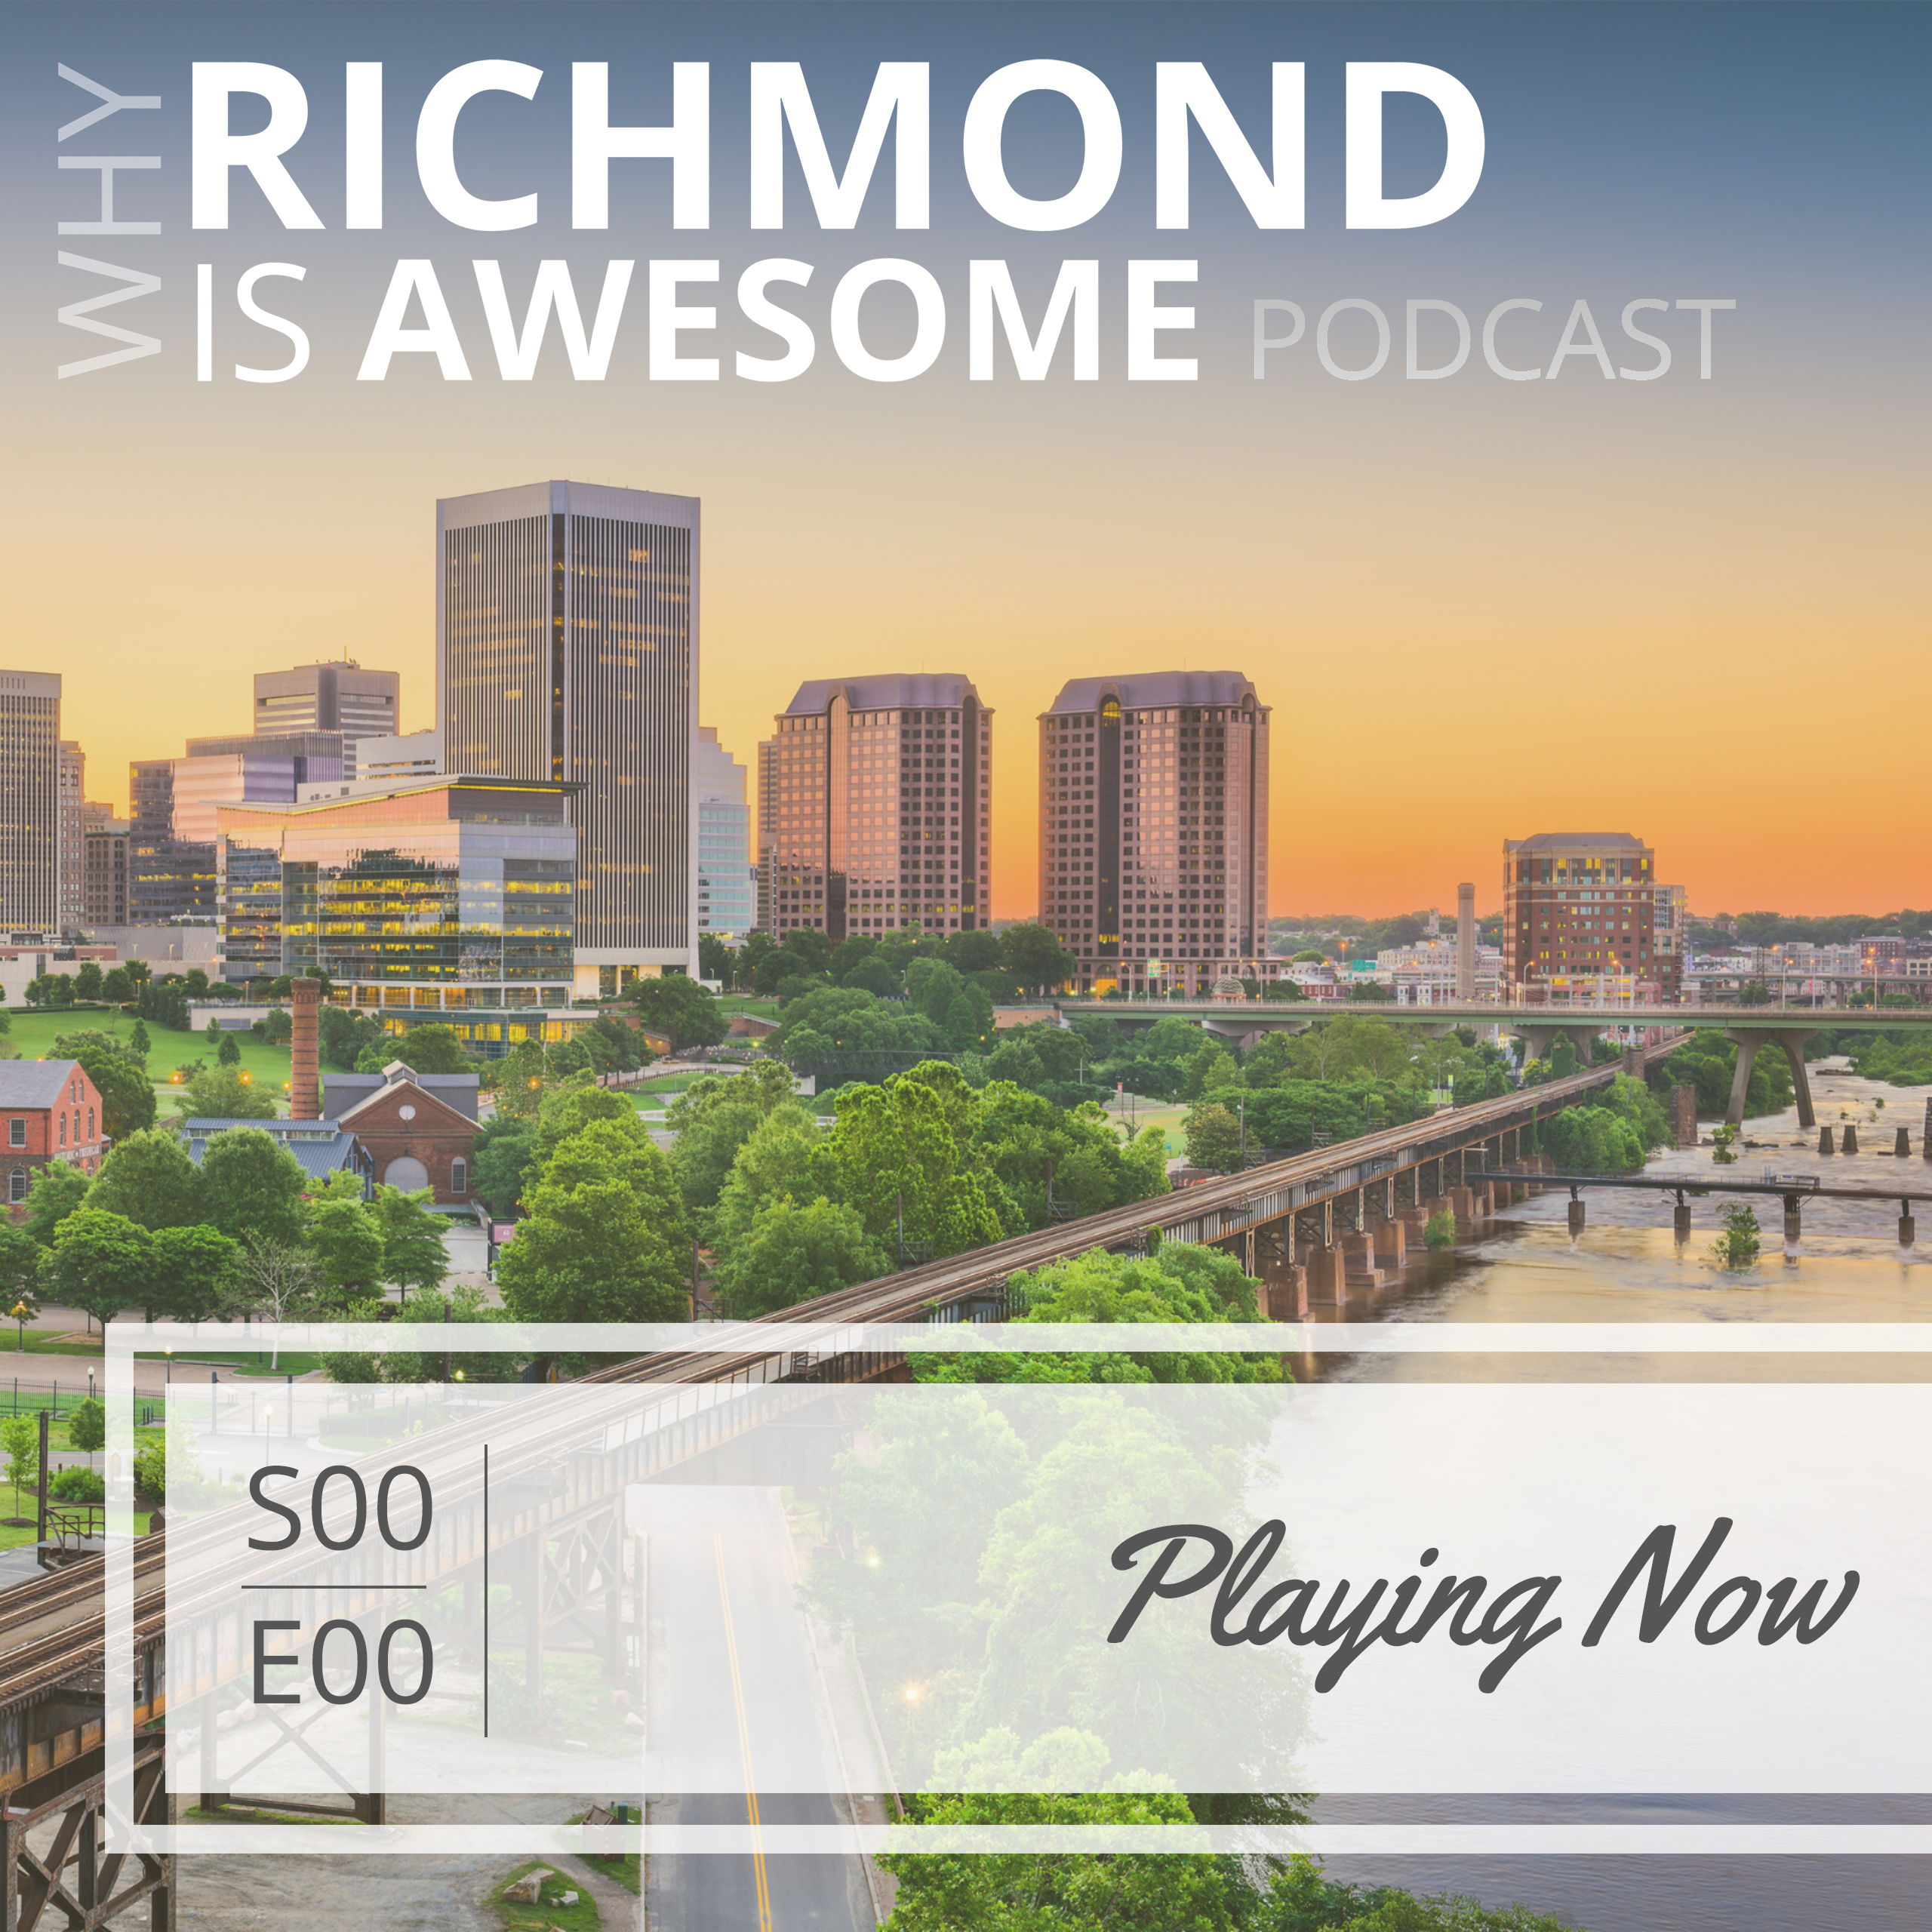 Why Richmond Is Awesome Podcast show art